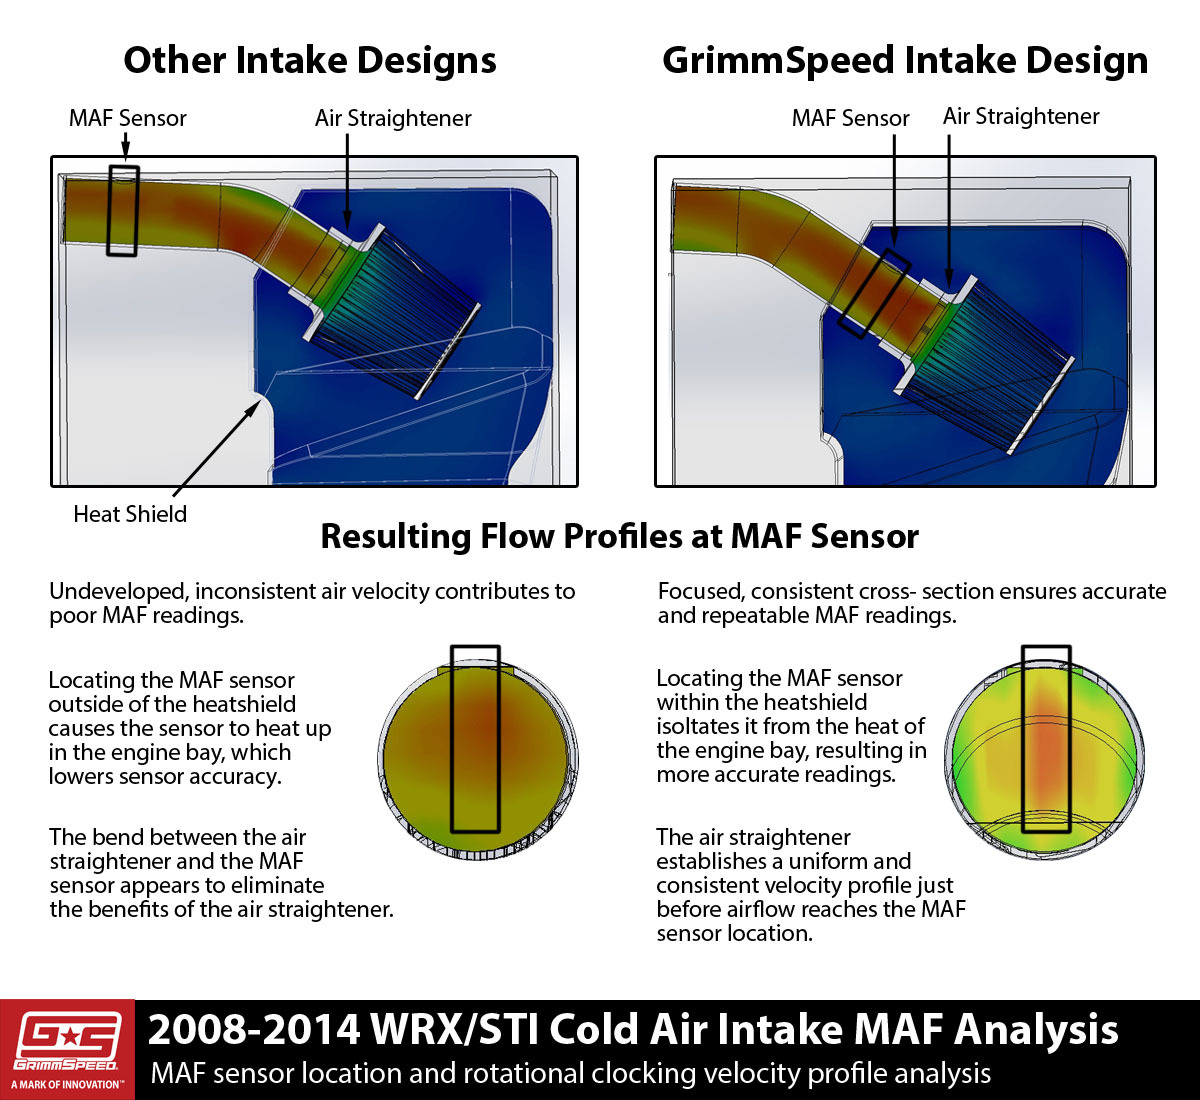 GrimmSpeed Cold Air Intake: Subaru 08-14 WRX/STi/ 09-13 Forester XT #30754